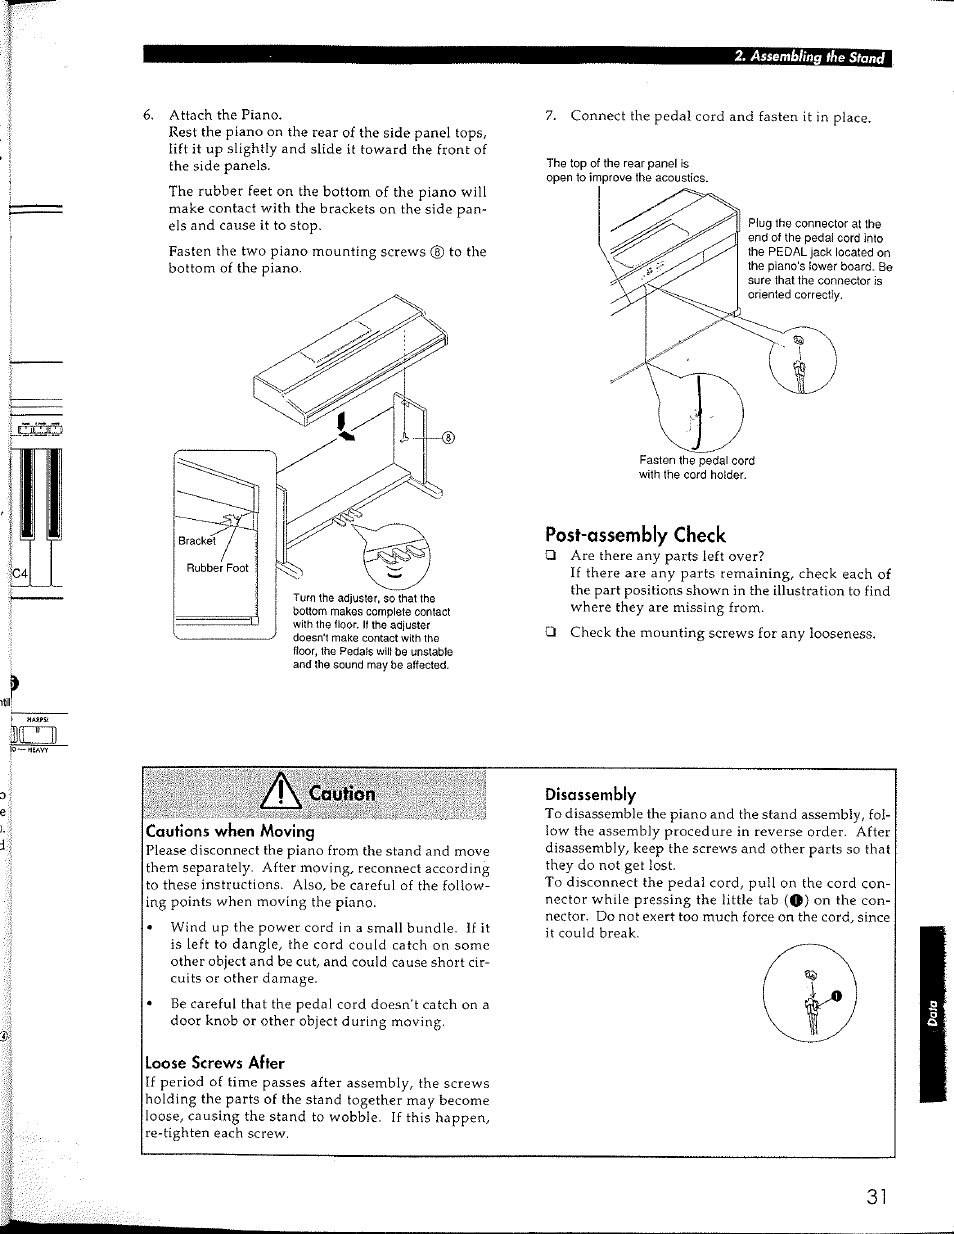 Post Assembly Check Caution Korg Concert Digital Piano C 150 Parts Diagram User